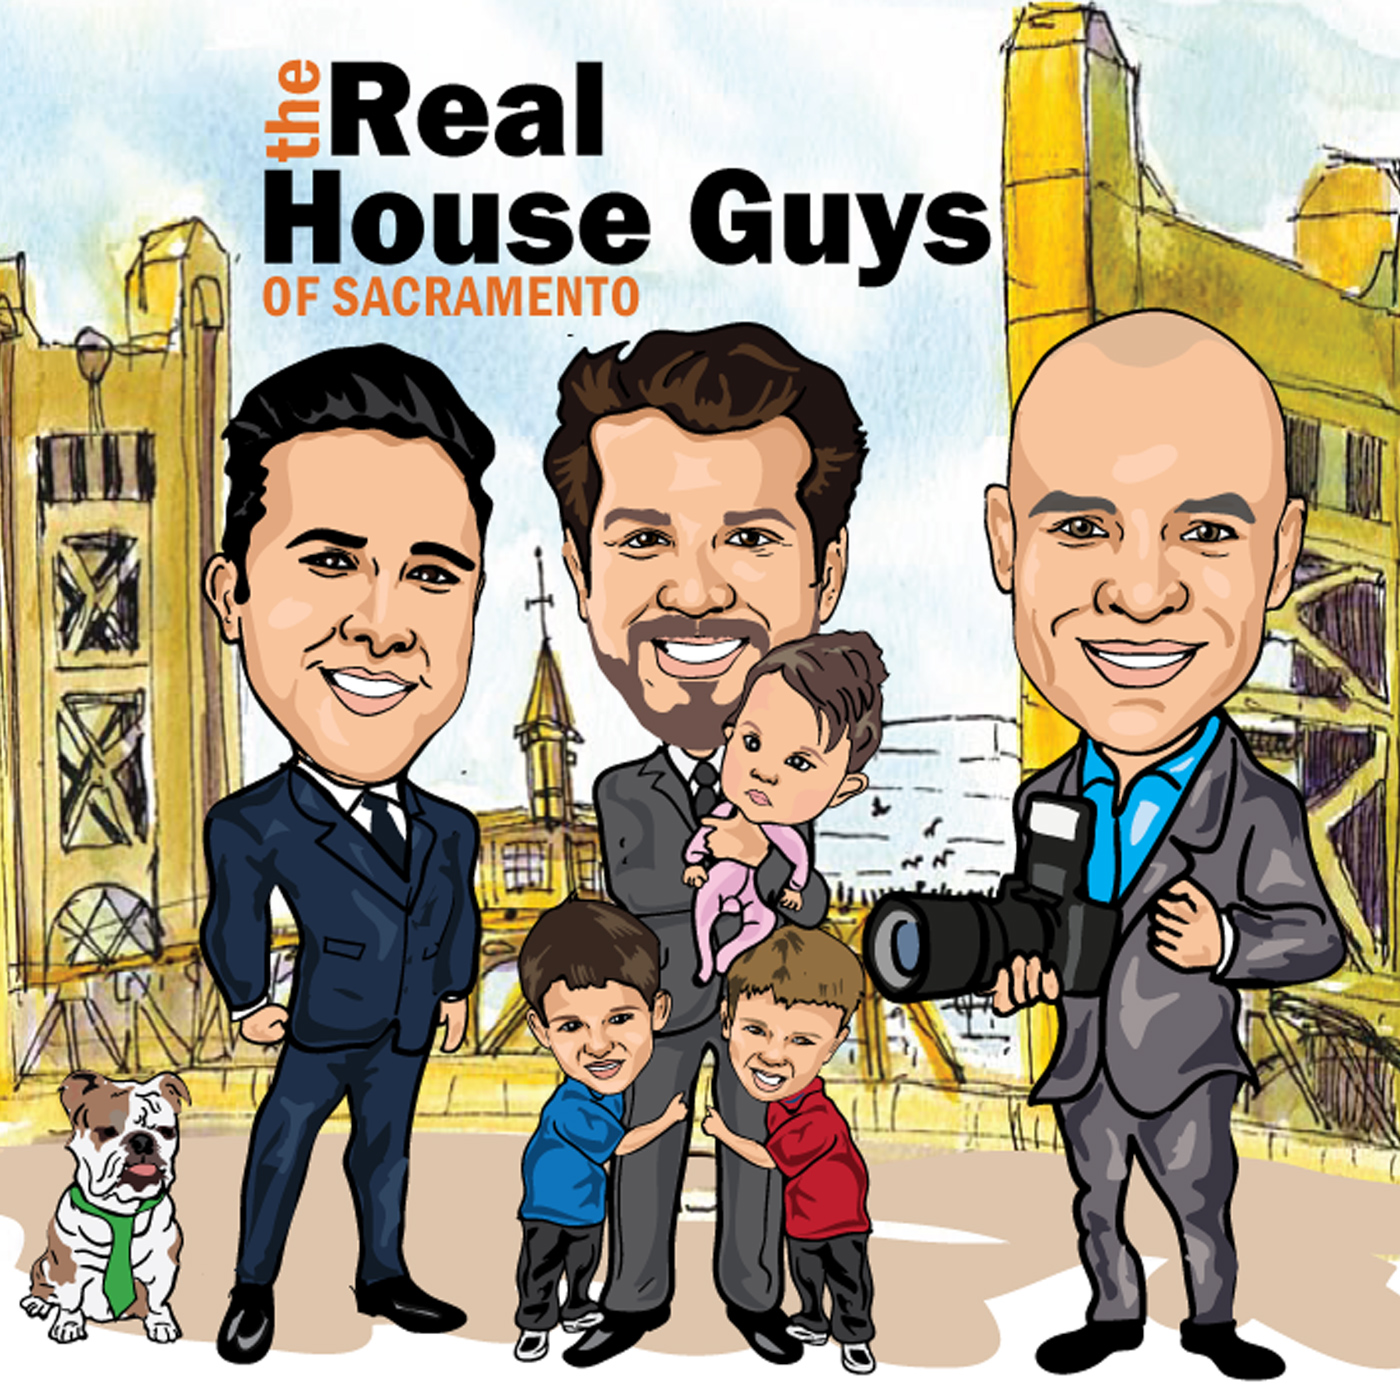 Episode 1 - Meet the Real House Guys of Sacramento!